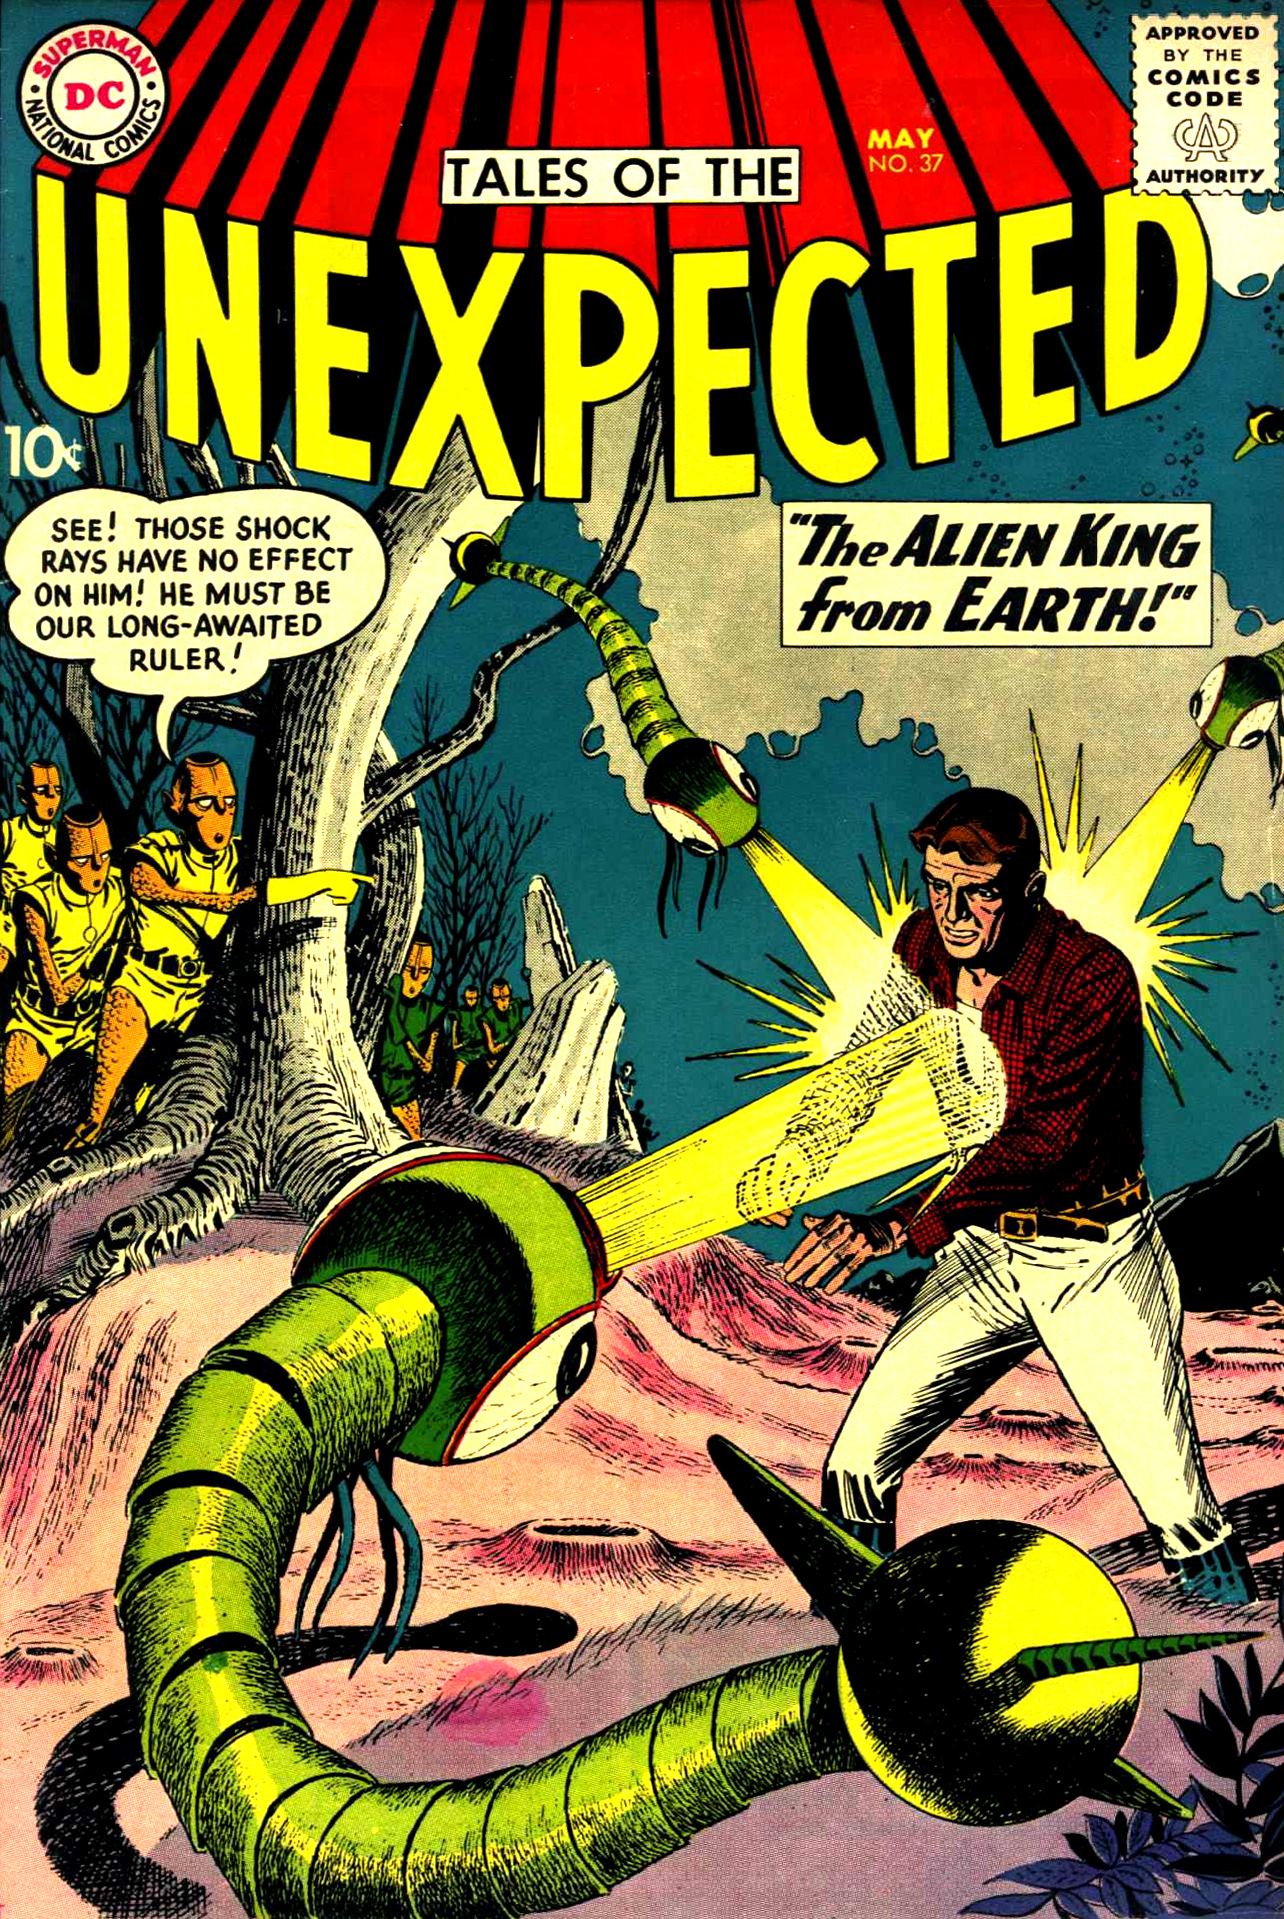 Tales of the Unexpected #37 (DC, 1959) Bernard Baily cover